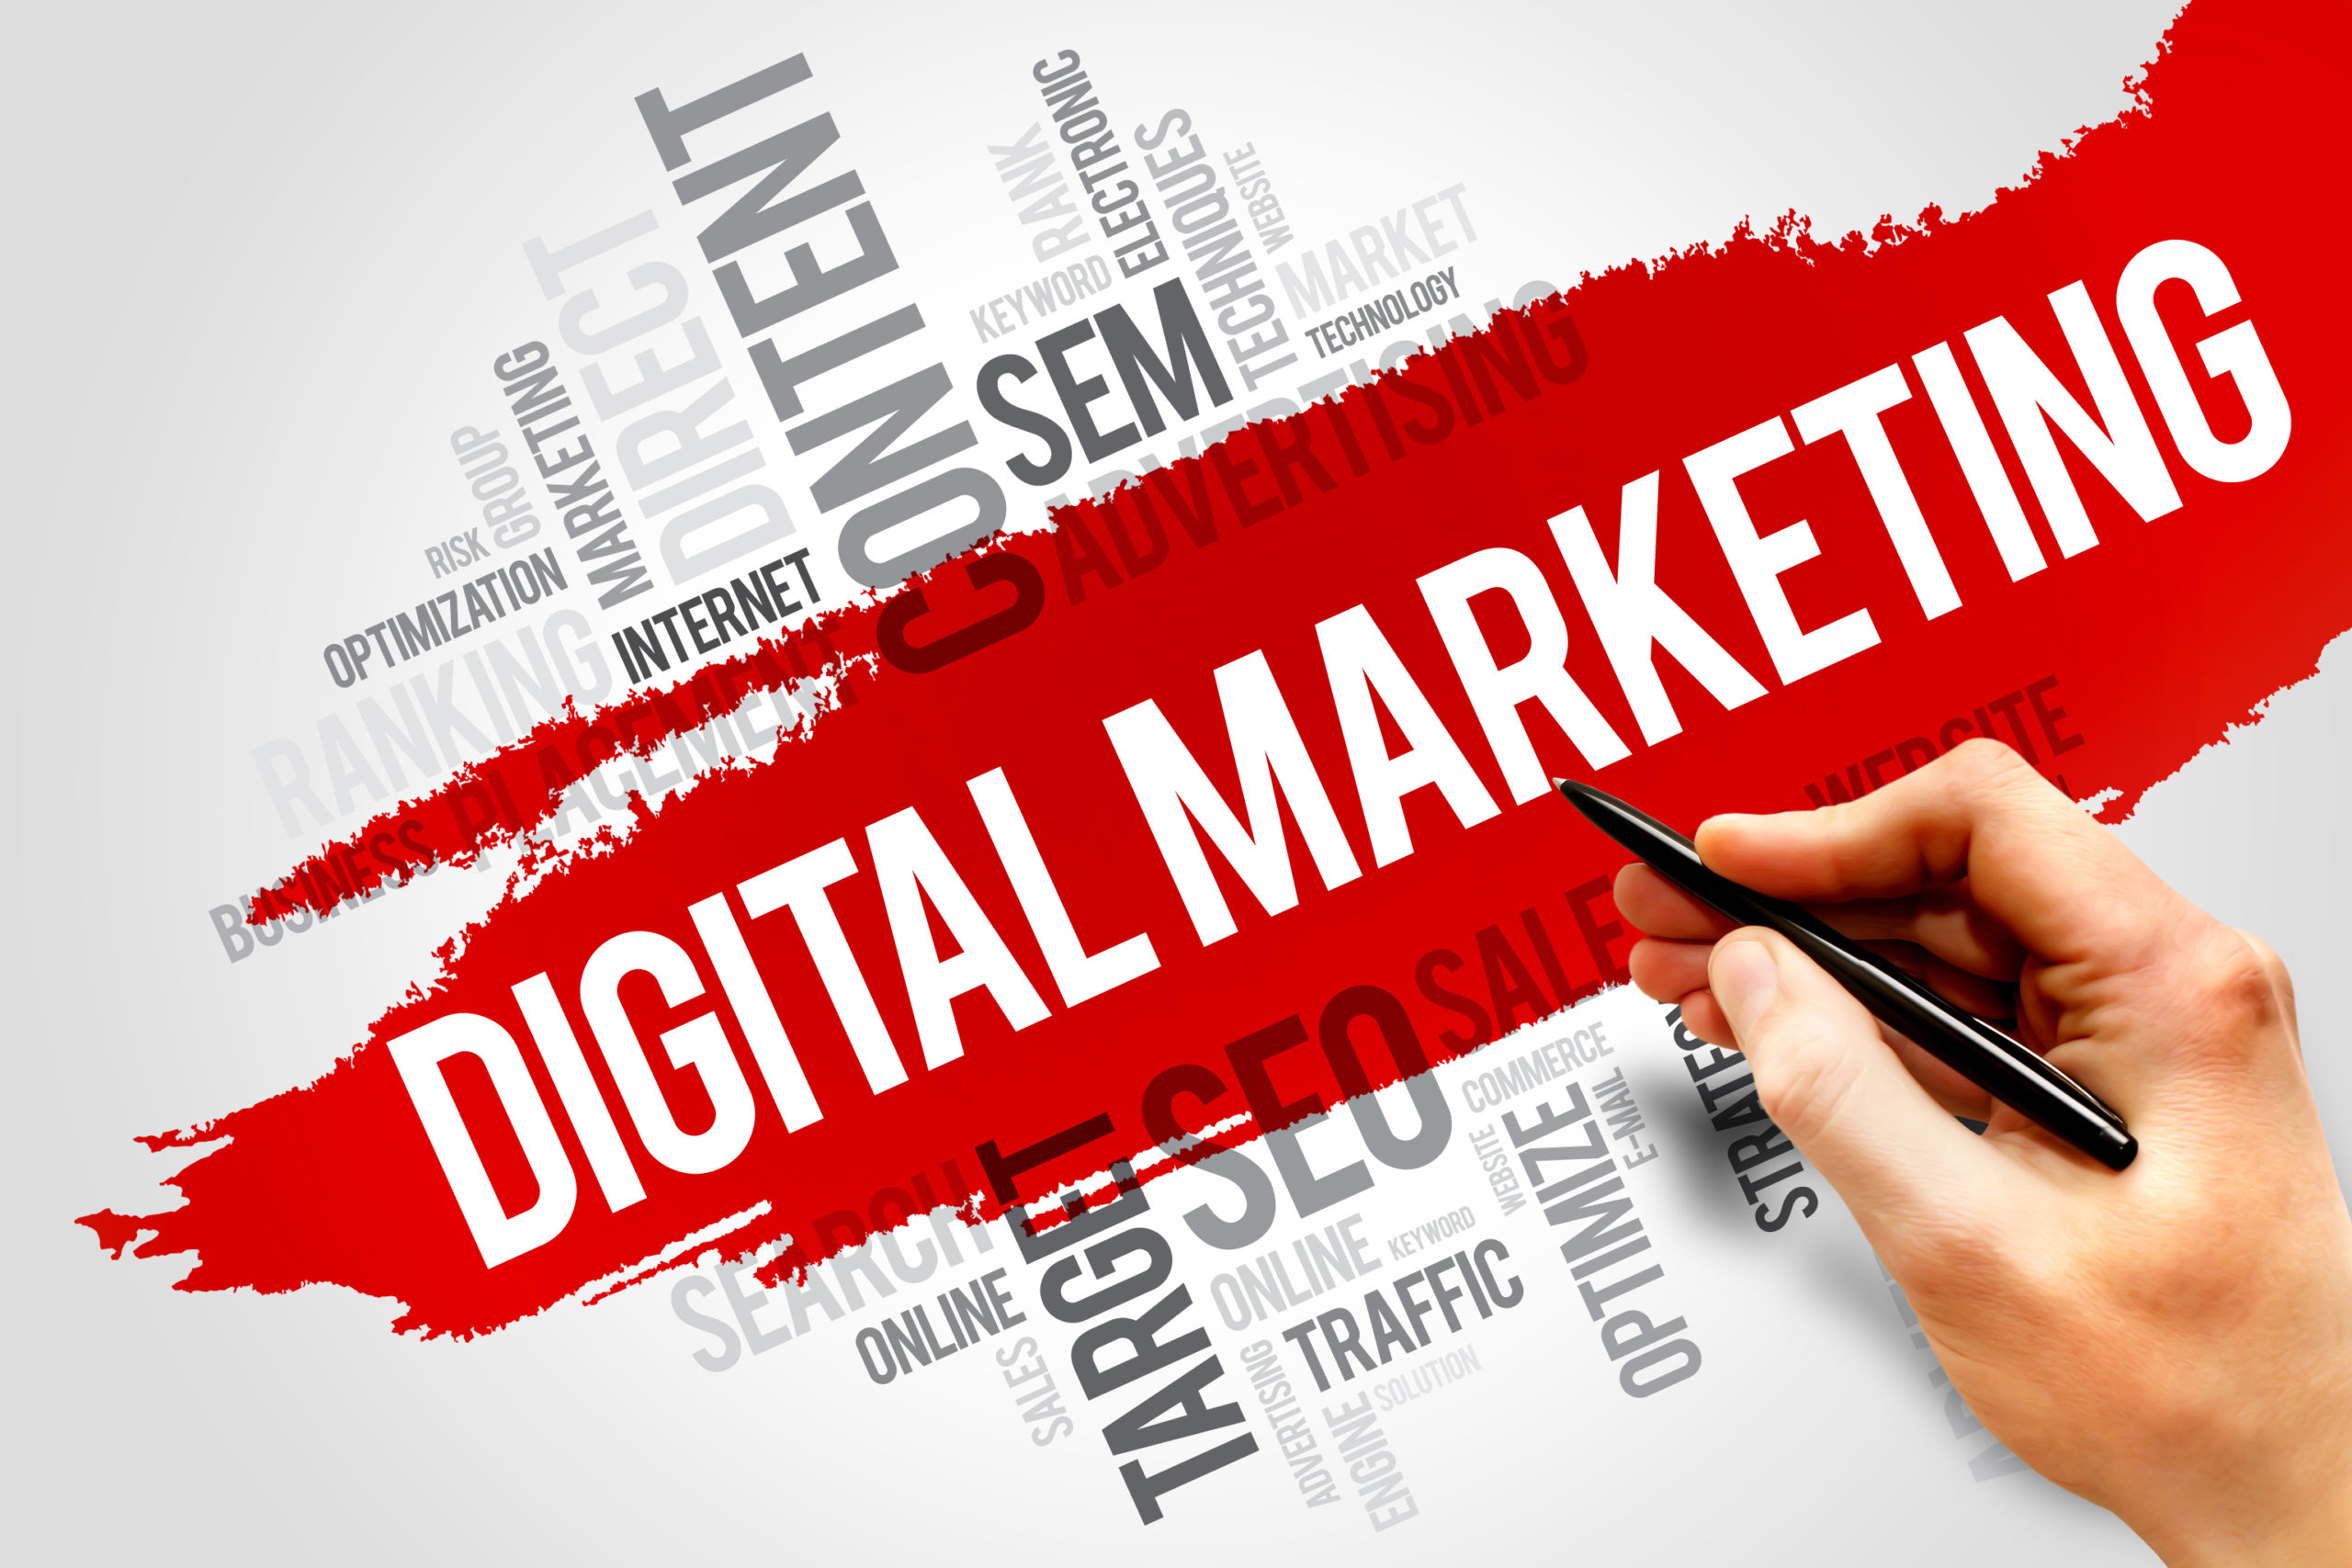 What is Digital Marketing and How To Develop A Digital Marketing Strategy